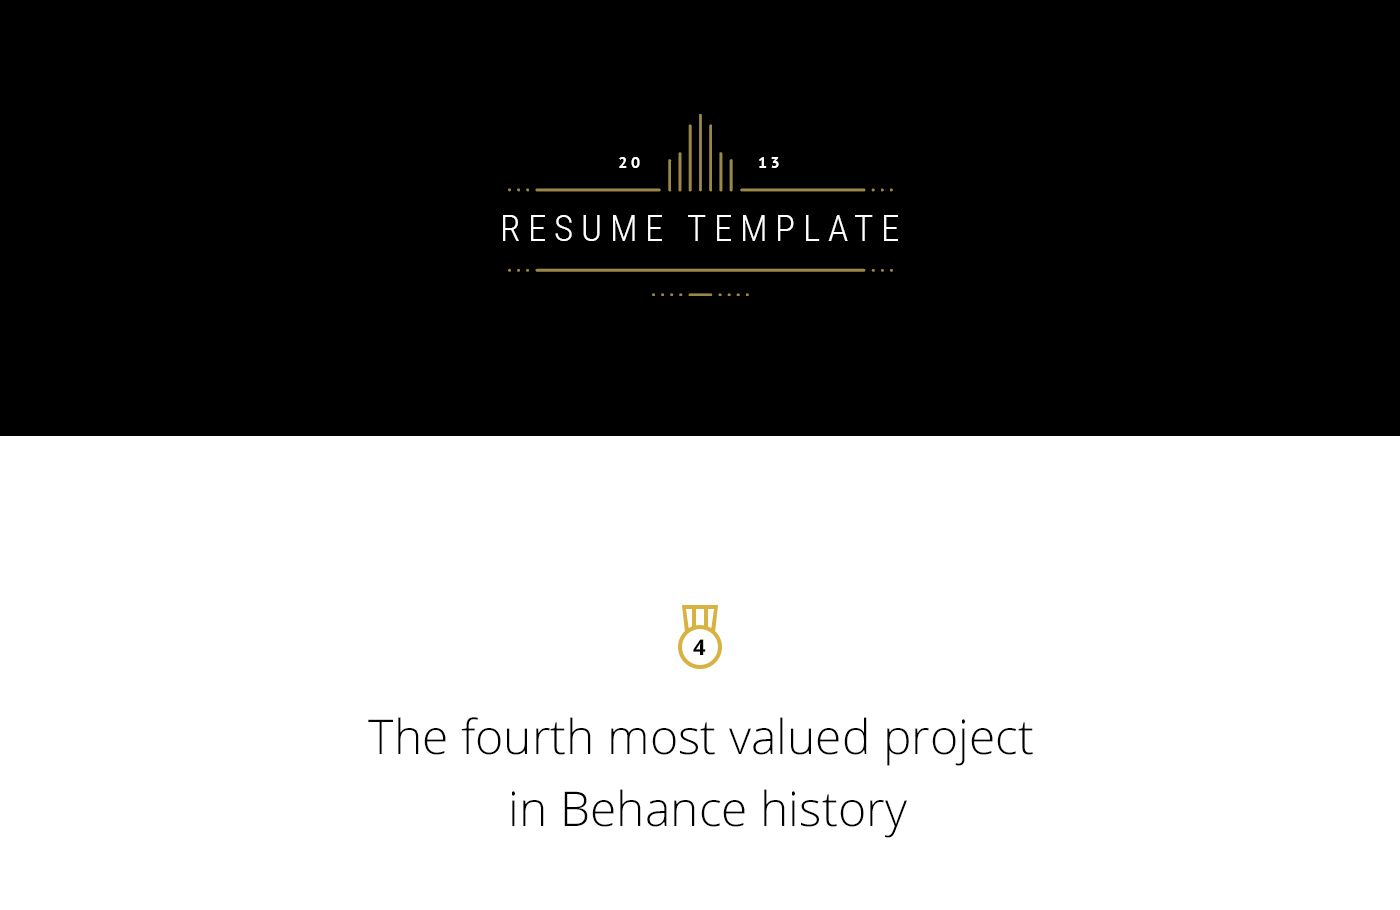 pages resume templates%0A FREE Resume Template on Behance